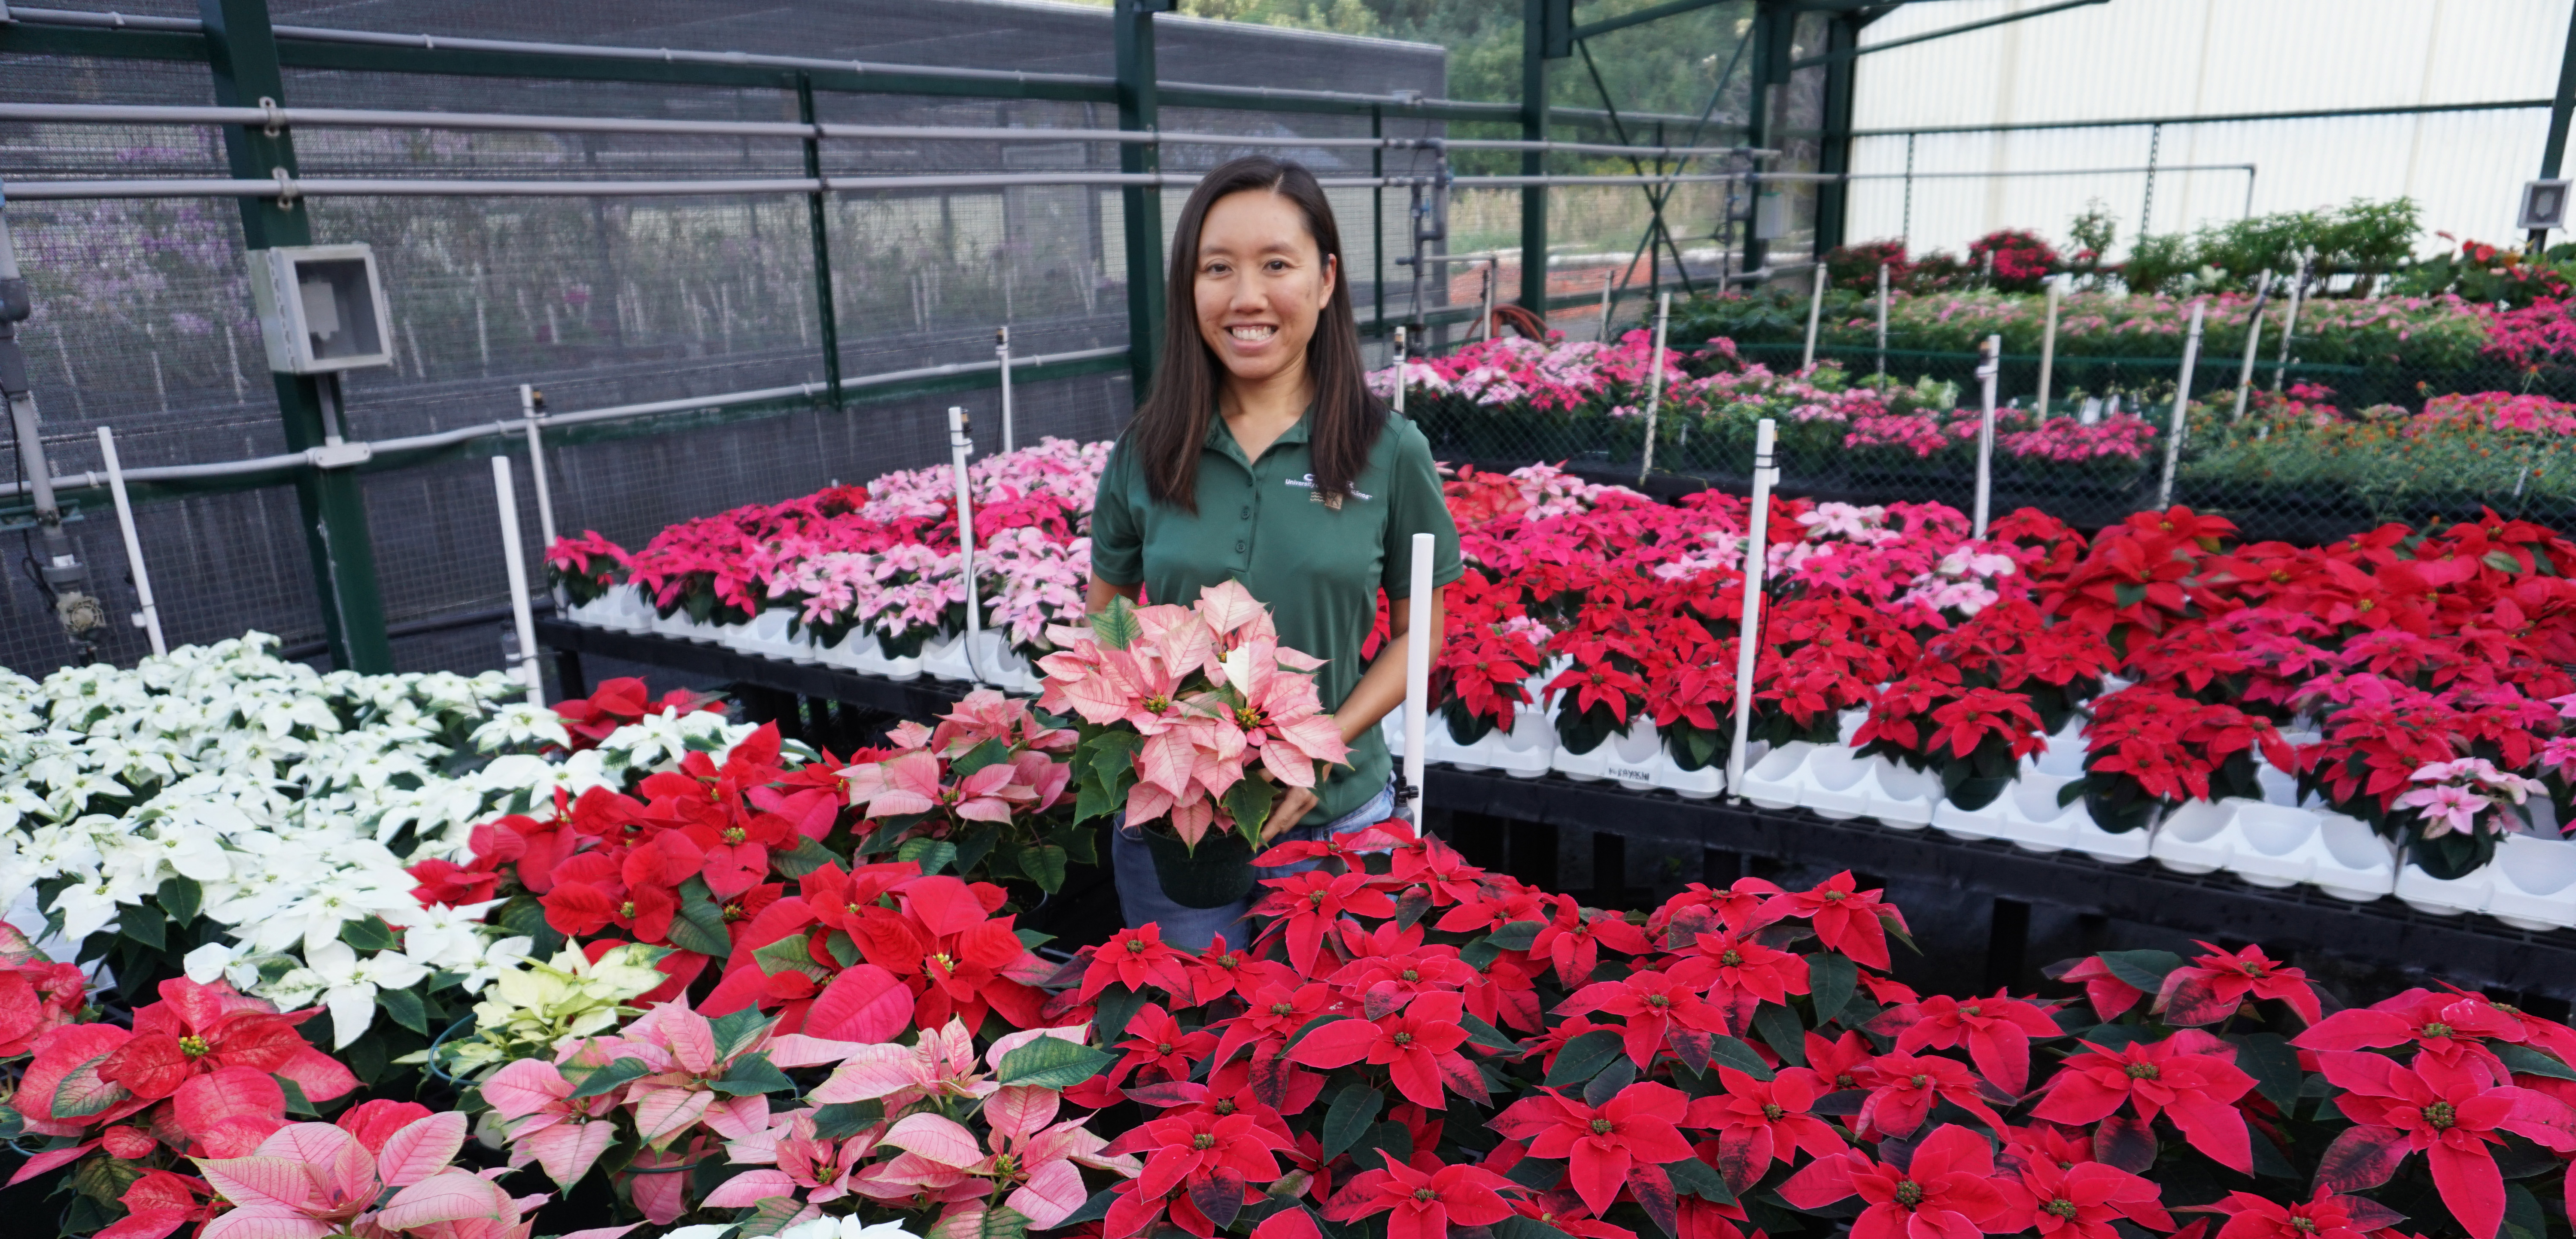 CTAHR student holding a potted pink poinsettia inside a greenhouse.